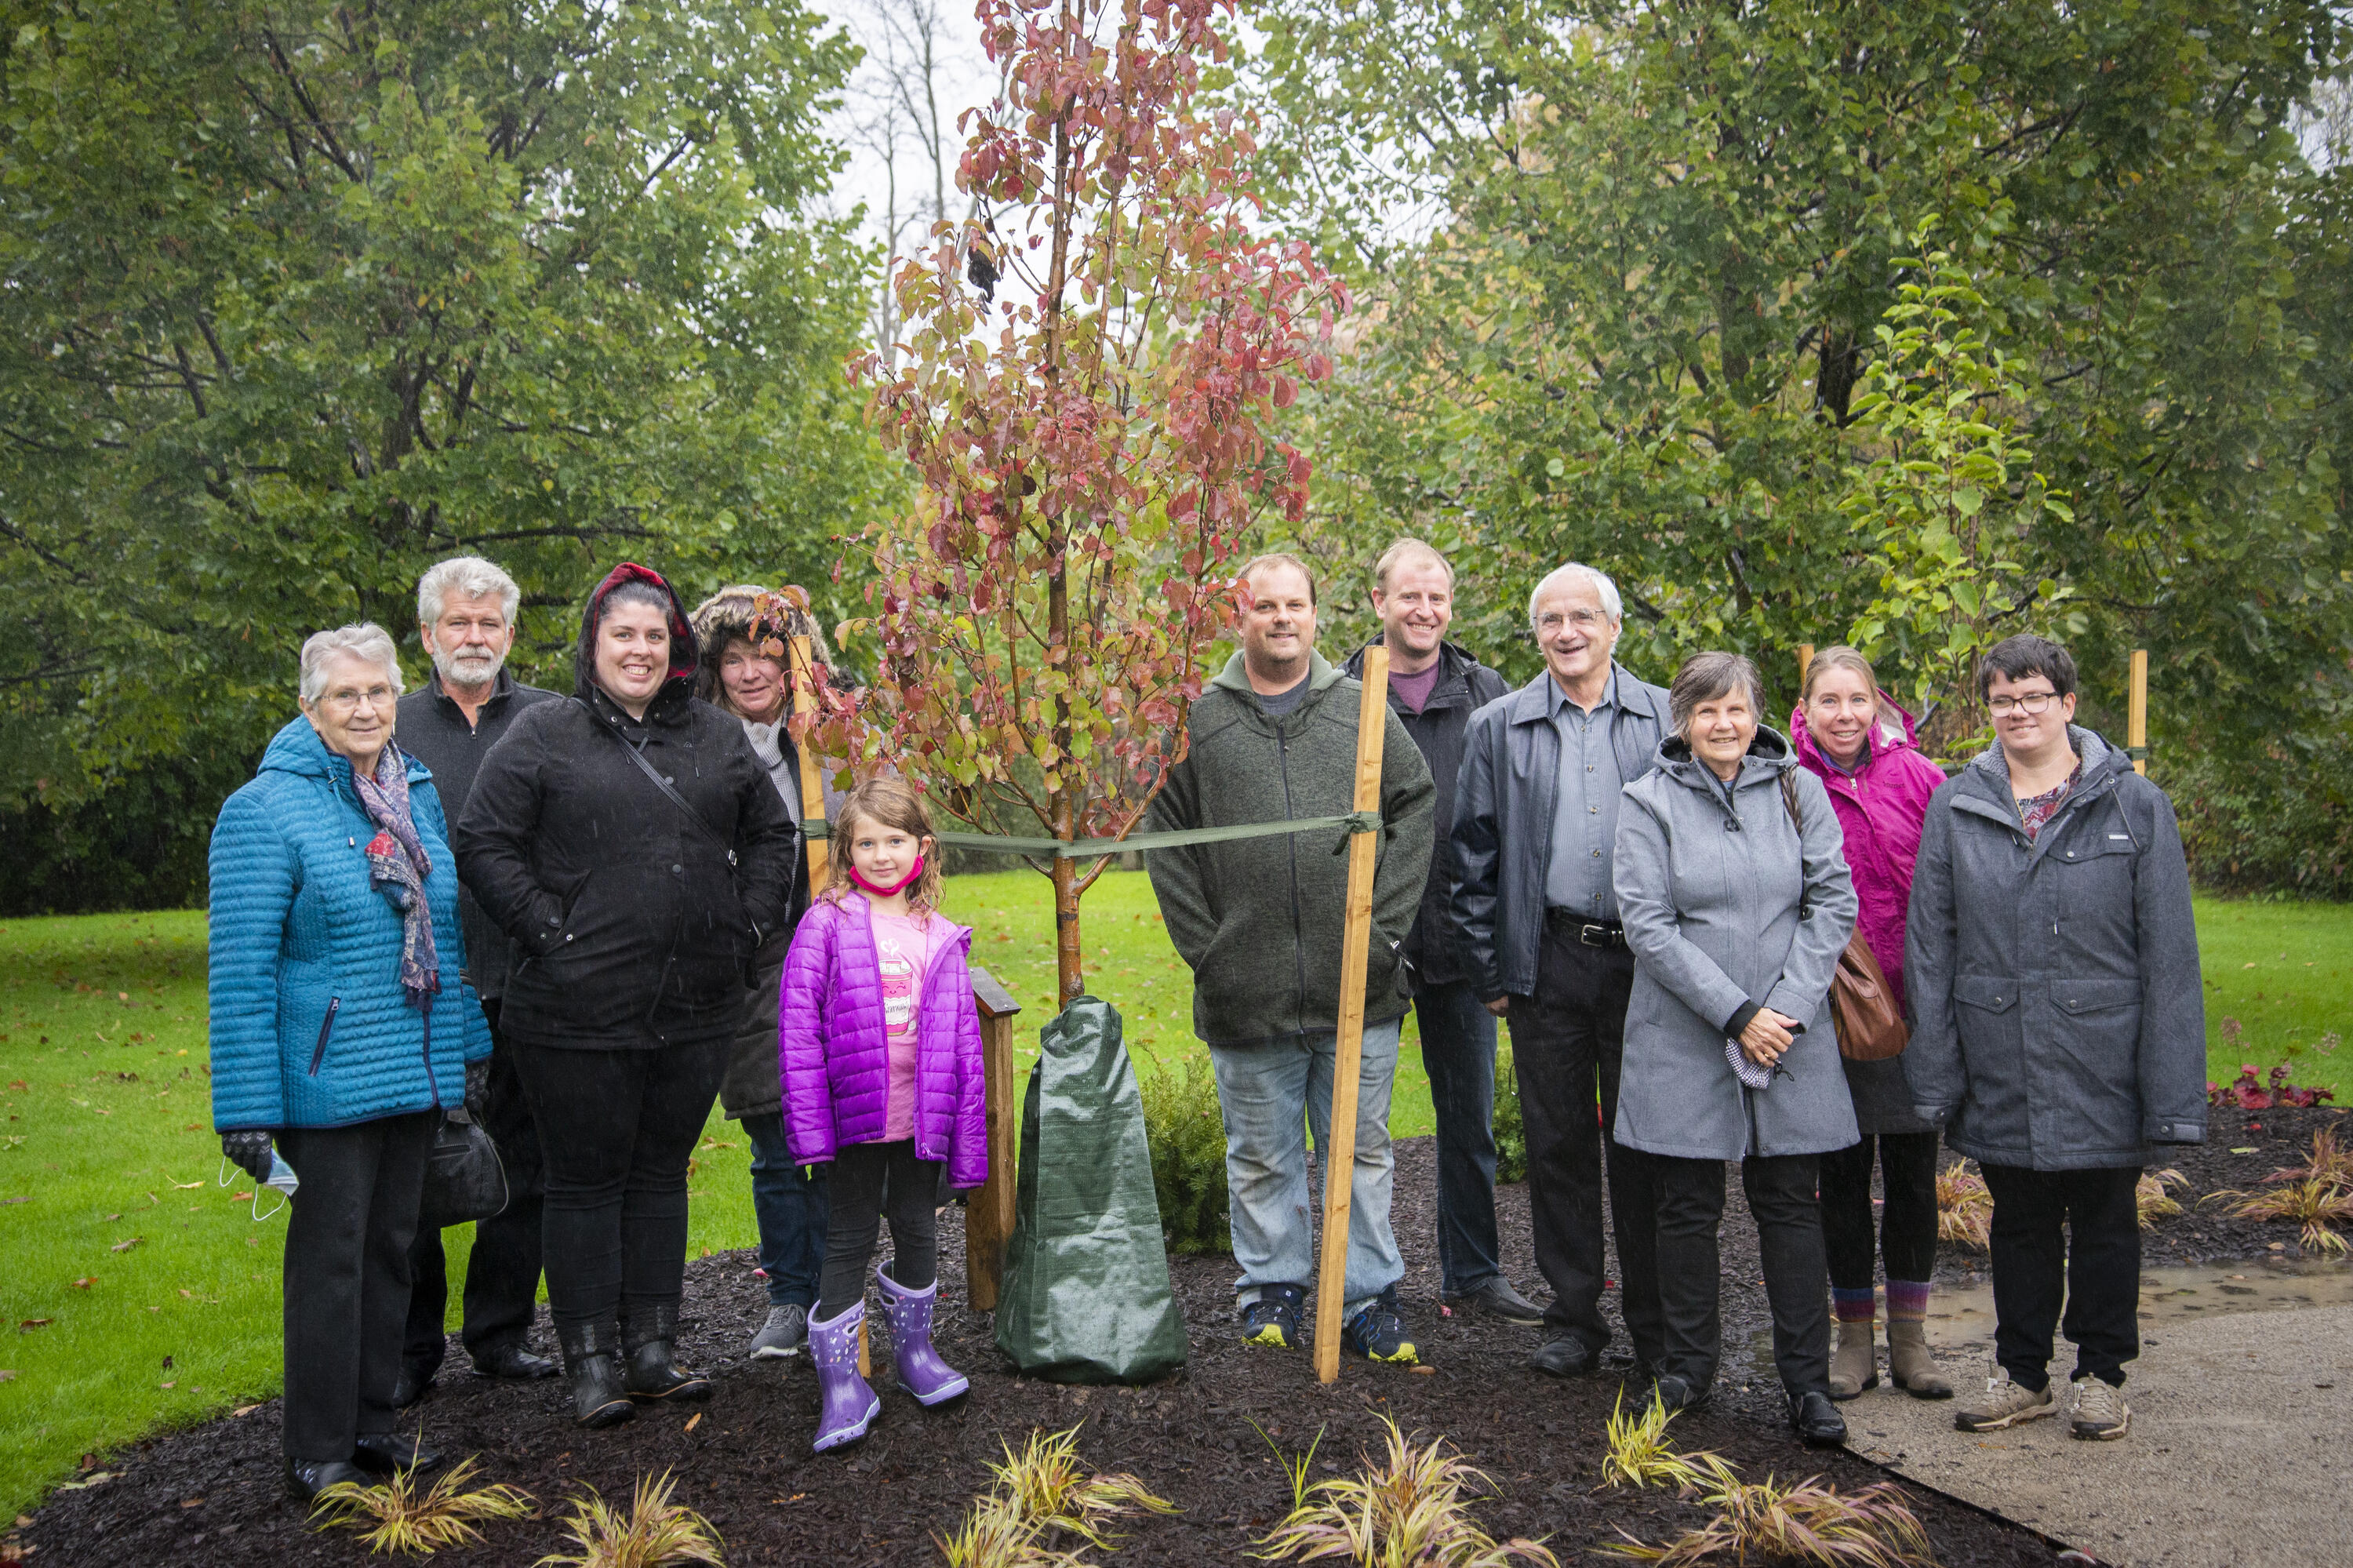 Families of students gathered to dedicate a new student memorial garden